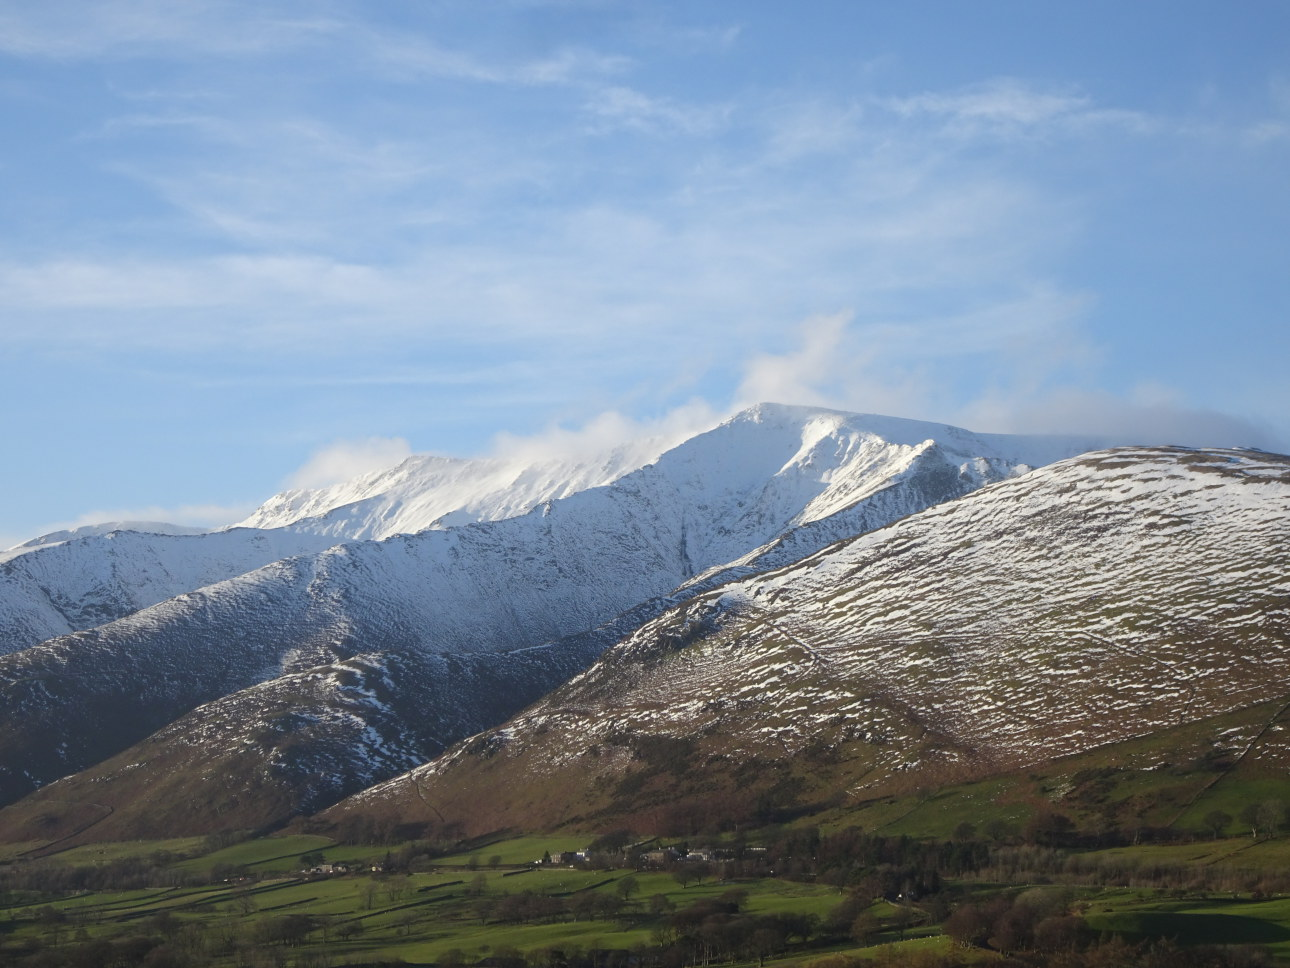 Blencathra with Hallsfell Ridge, rising to the summit,  seen centrally. Taken on 5/12/20 at 3:24pm.